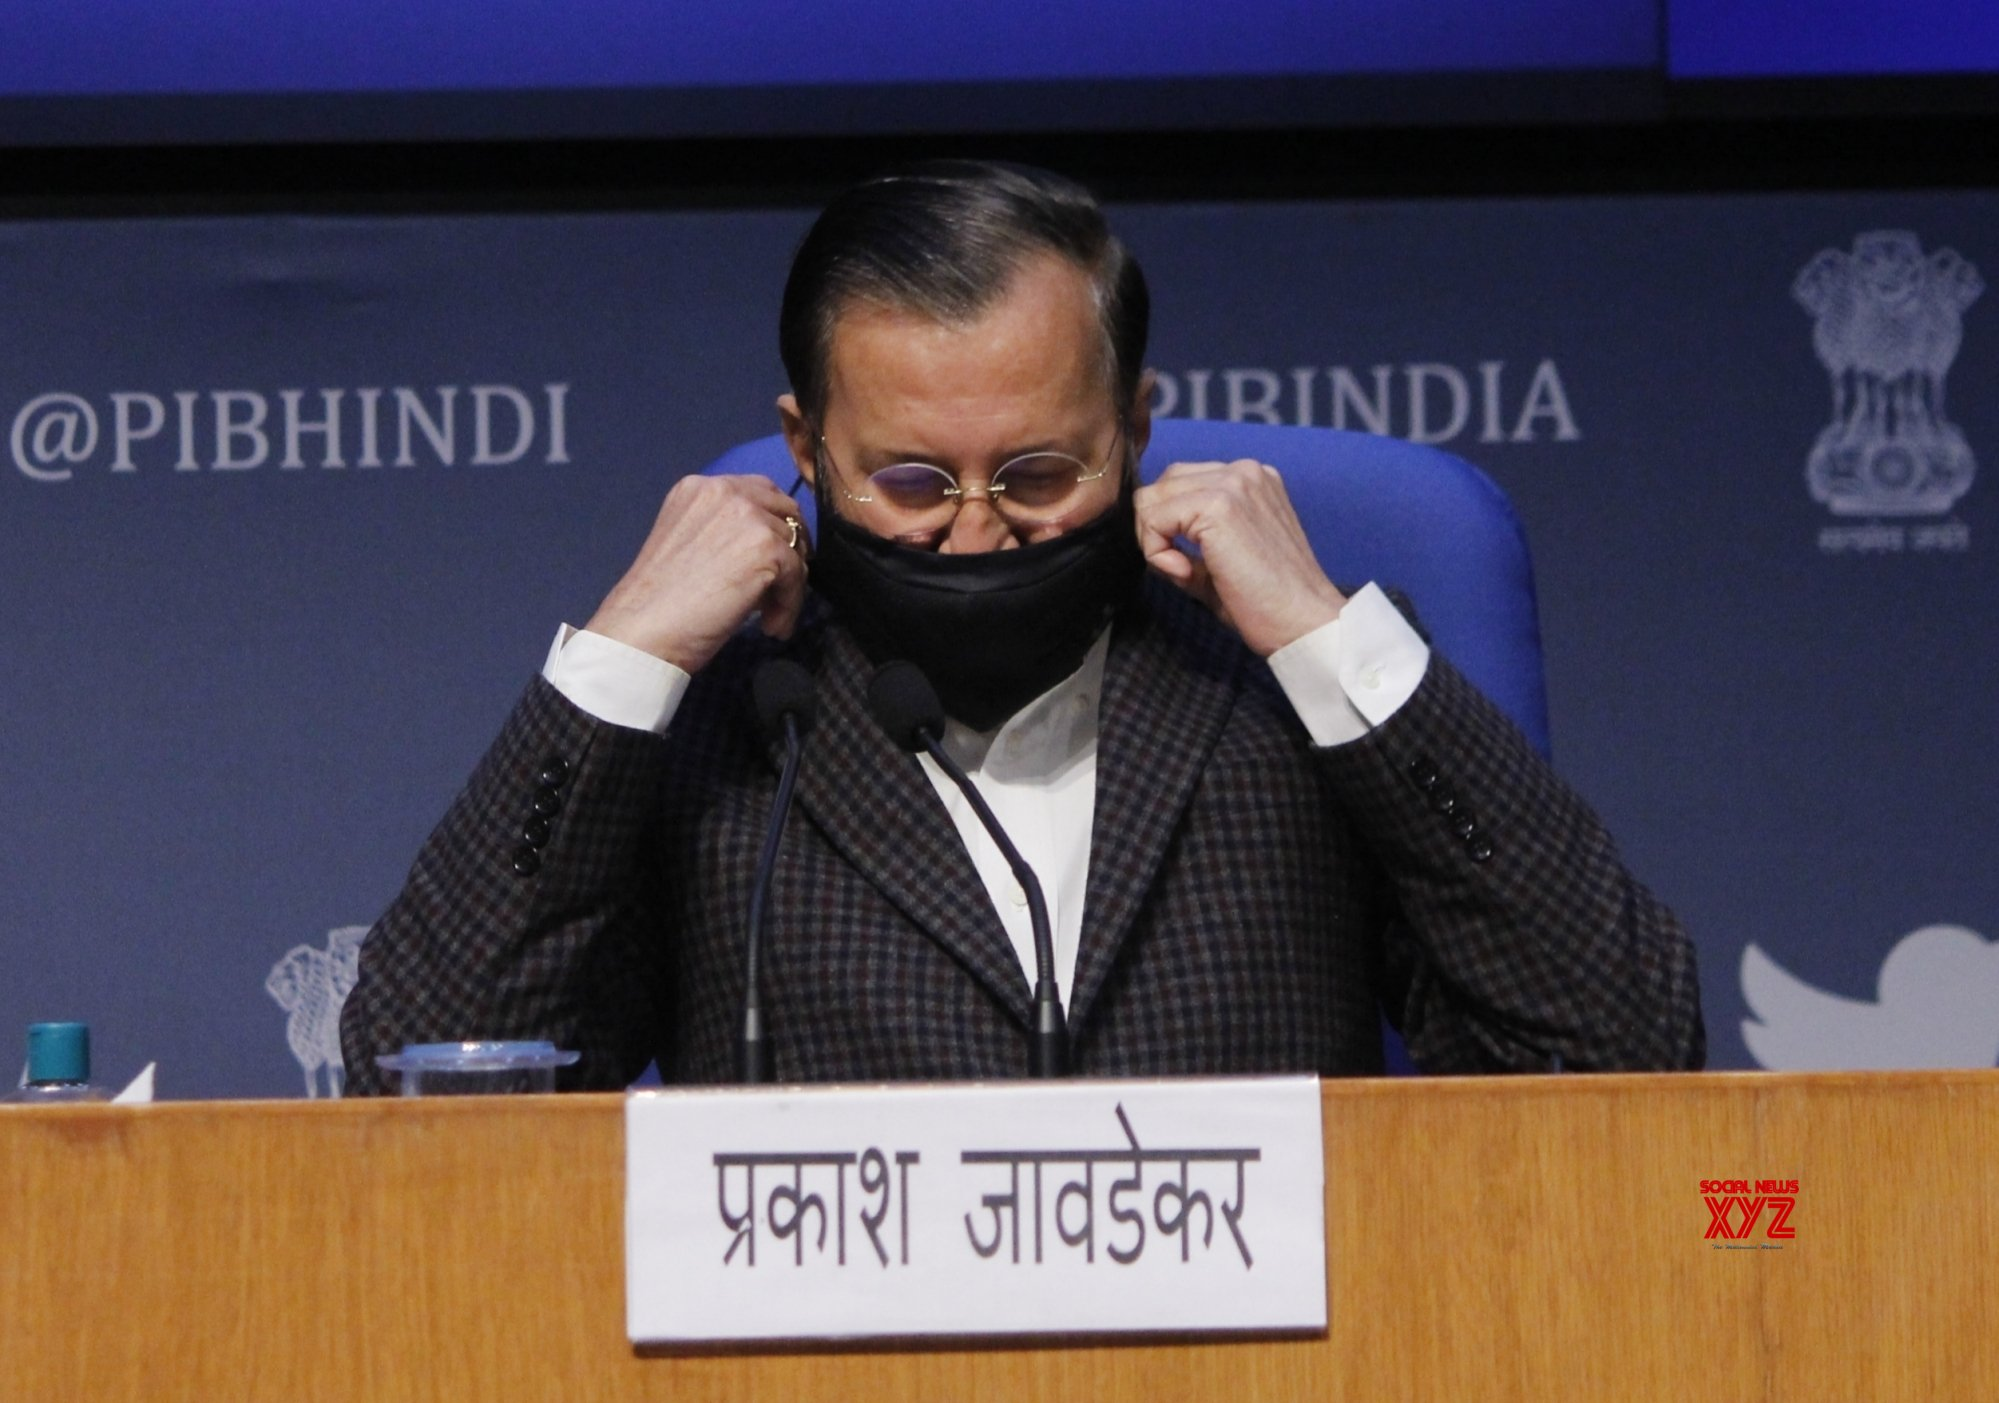 New Delhi: Prakash Javadekar's conference #Gallery